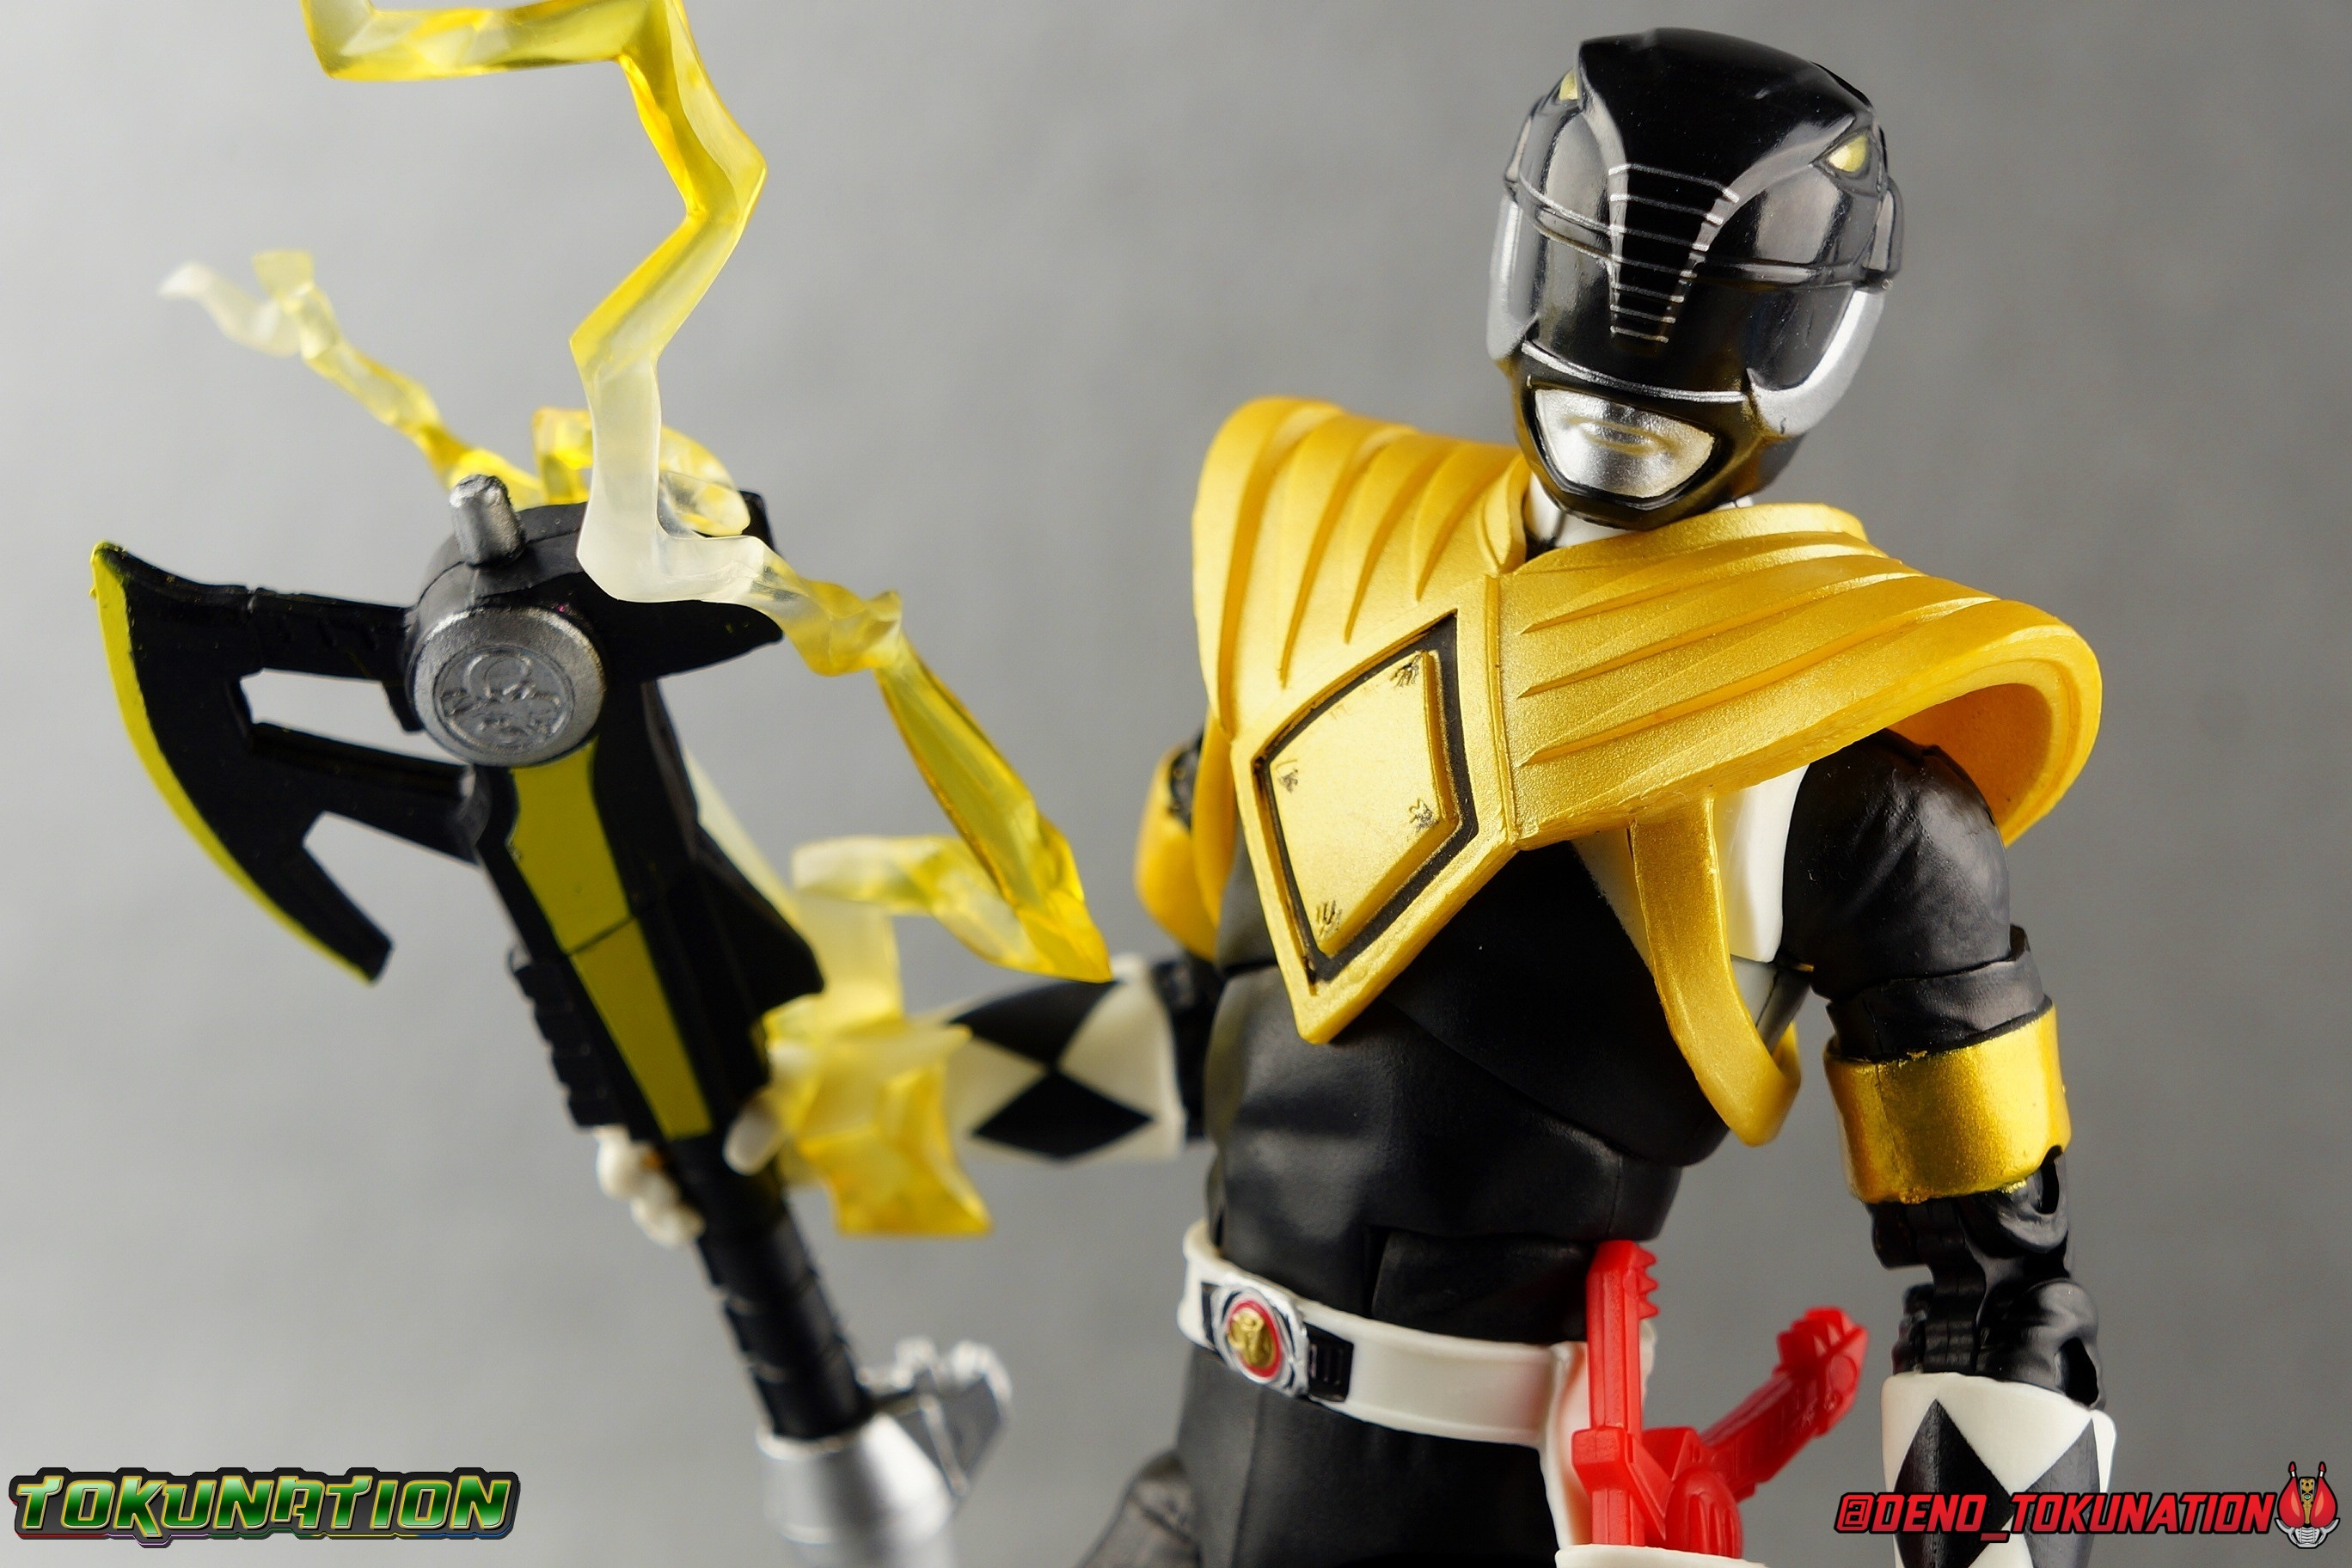 Power Rangers Lightning Collection Dragon Shield Mighty Morphin Black Ranger Gallery Tokunation Armour in black dragon armour. power rangers lightning collection